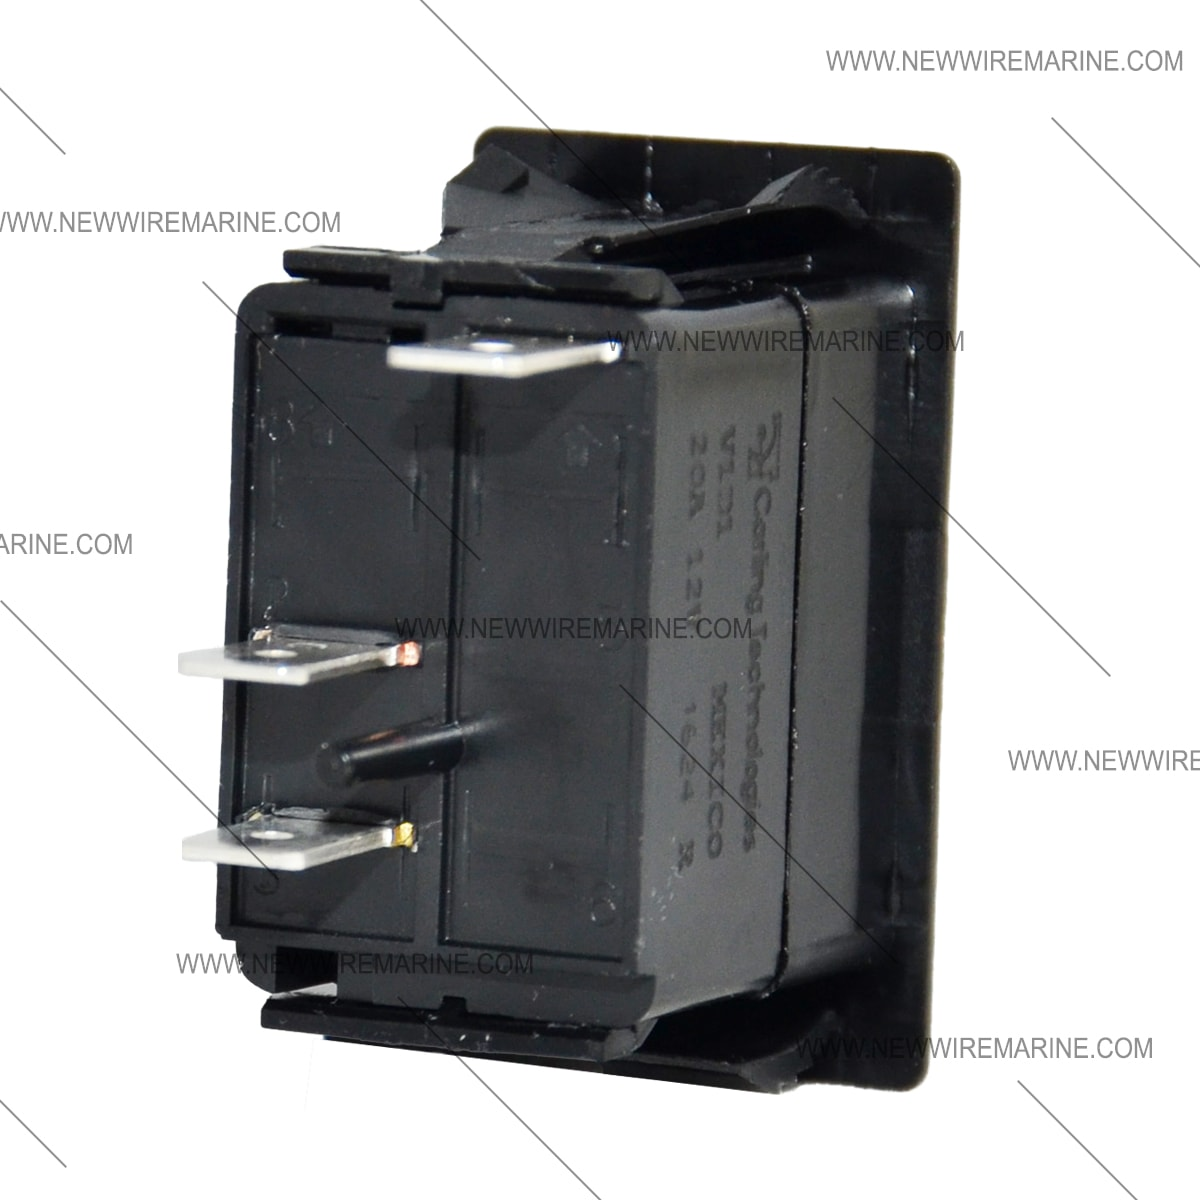 wiring diagram for light bar rocker switch seat ibiza 6l on off marine carling v1d1 new wire